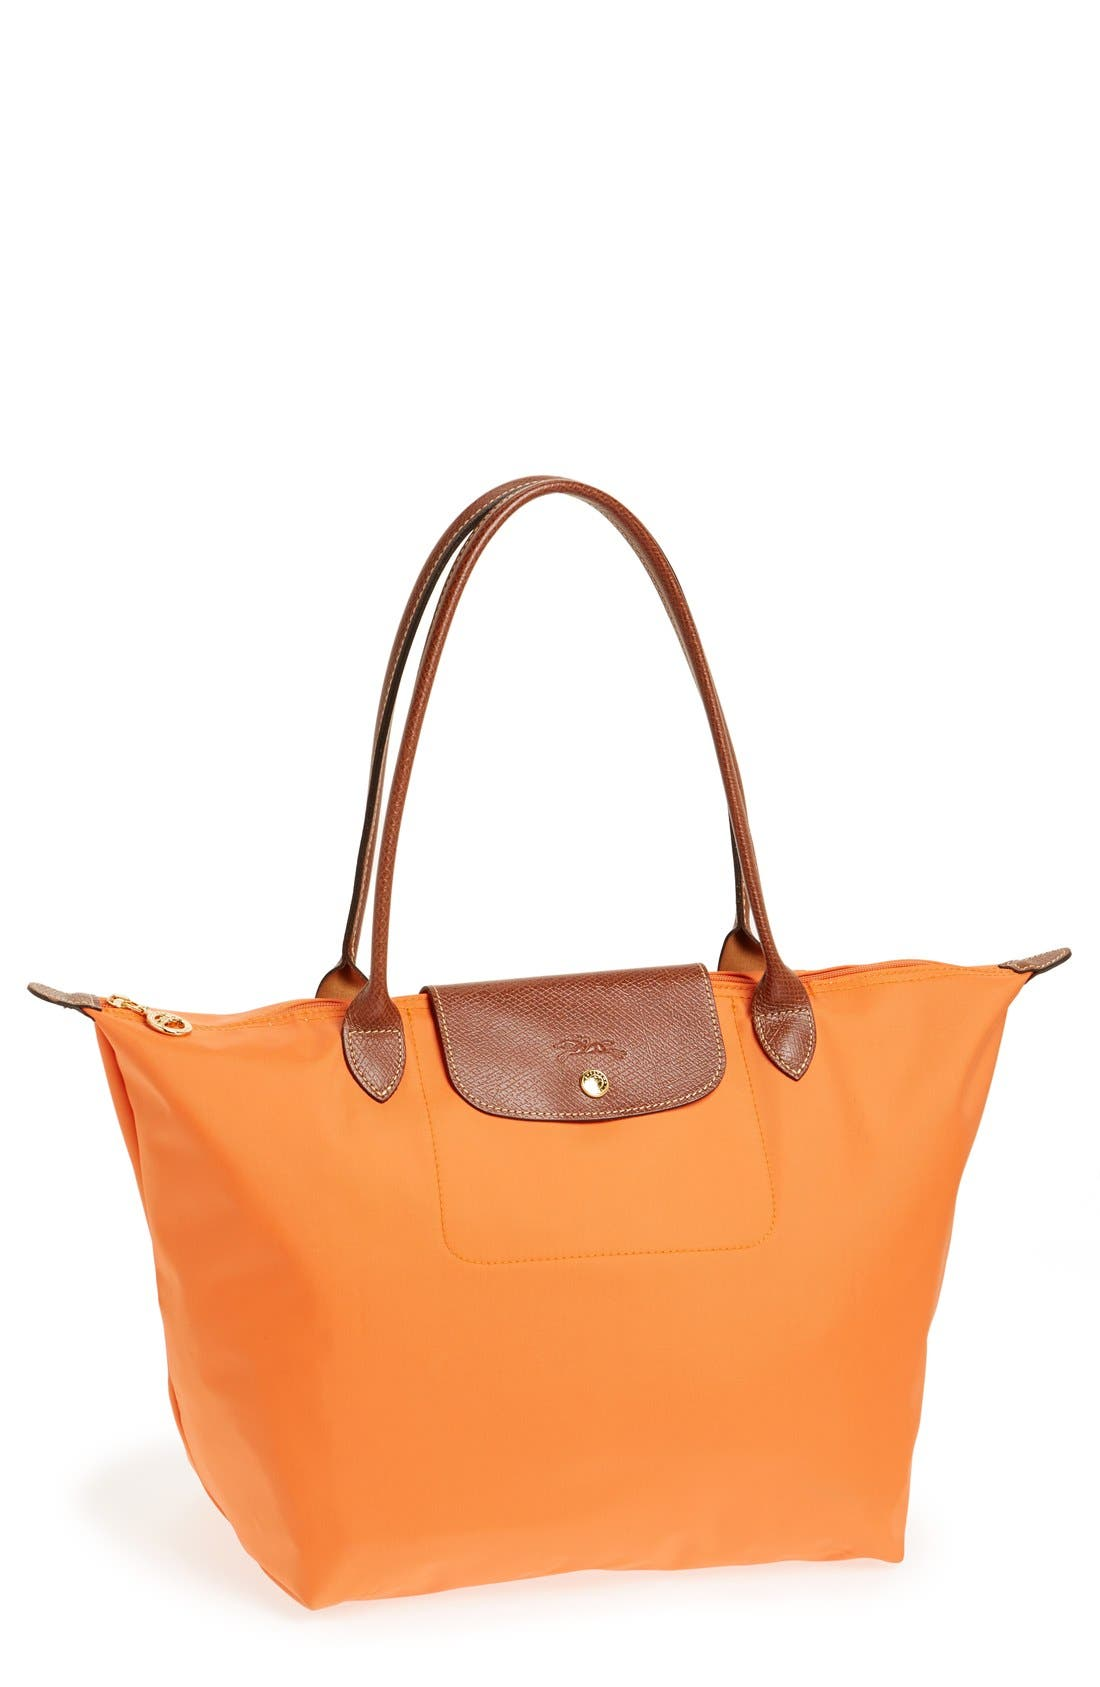 Alternate Image 1 Selected - Longchamp 'Large Le Pliage' Tote